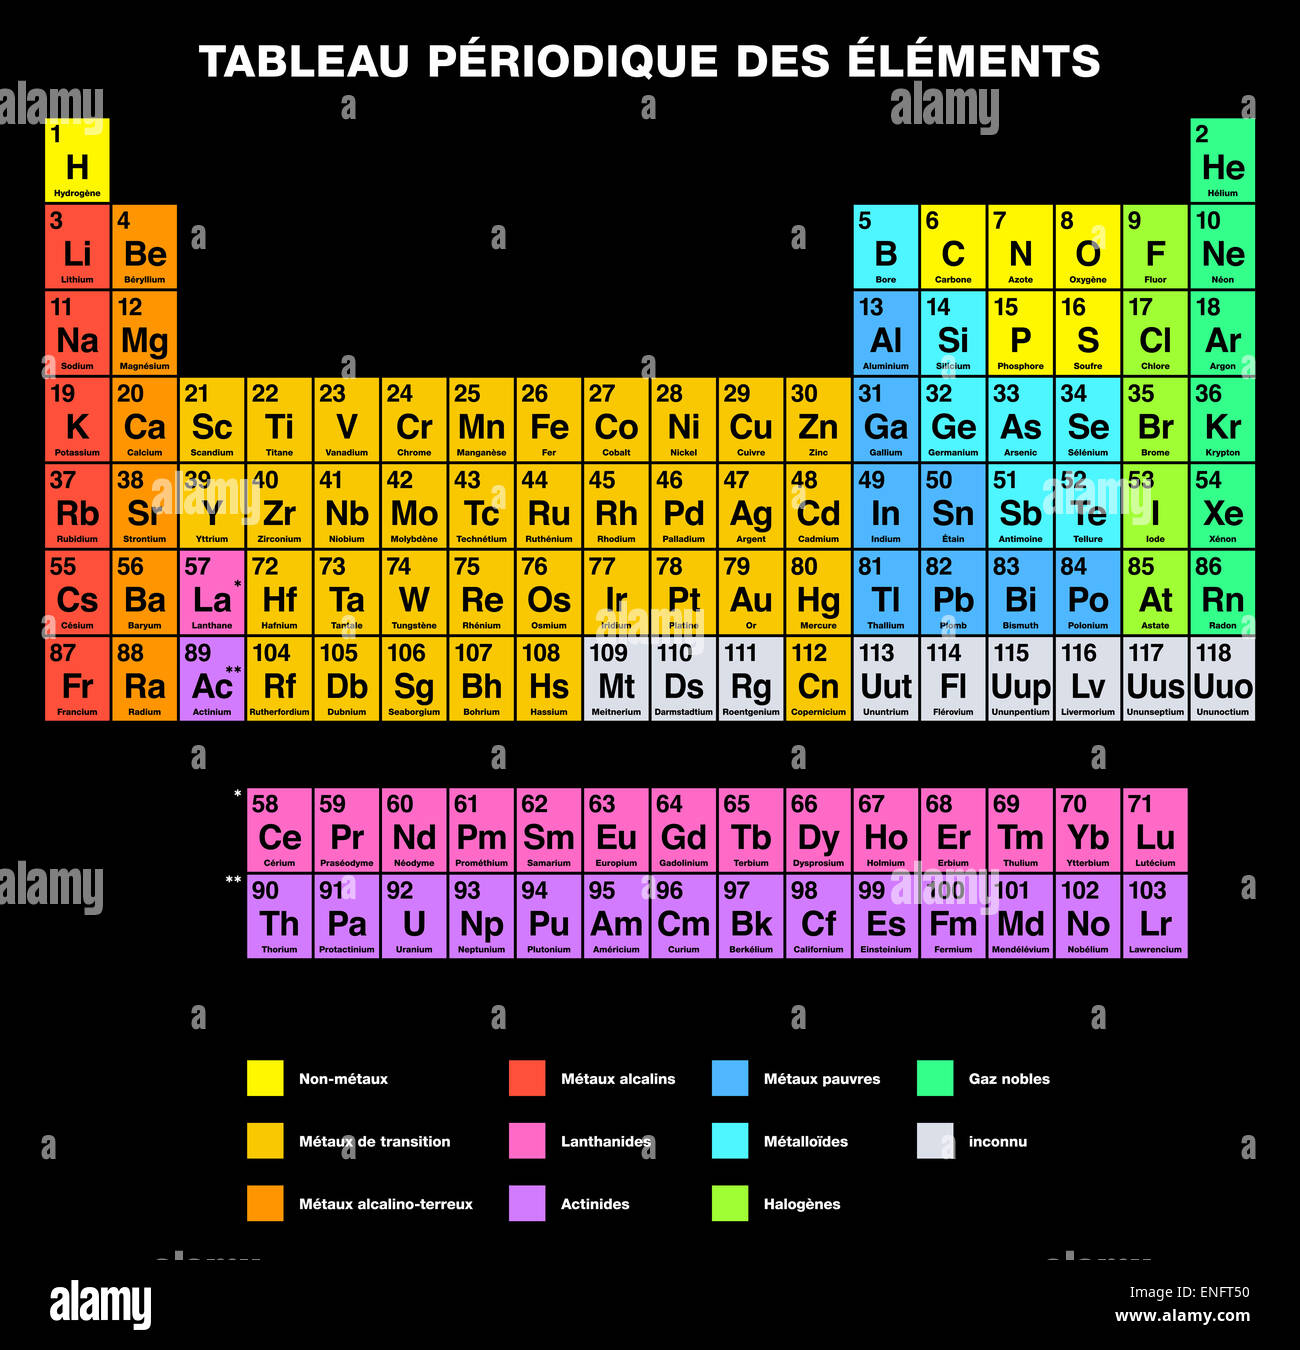 Mendeleev periodic table stock photos mendeleev periodic table periodic table of the elements french labeling stock image urtaz Choice Image